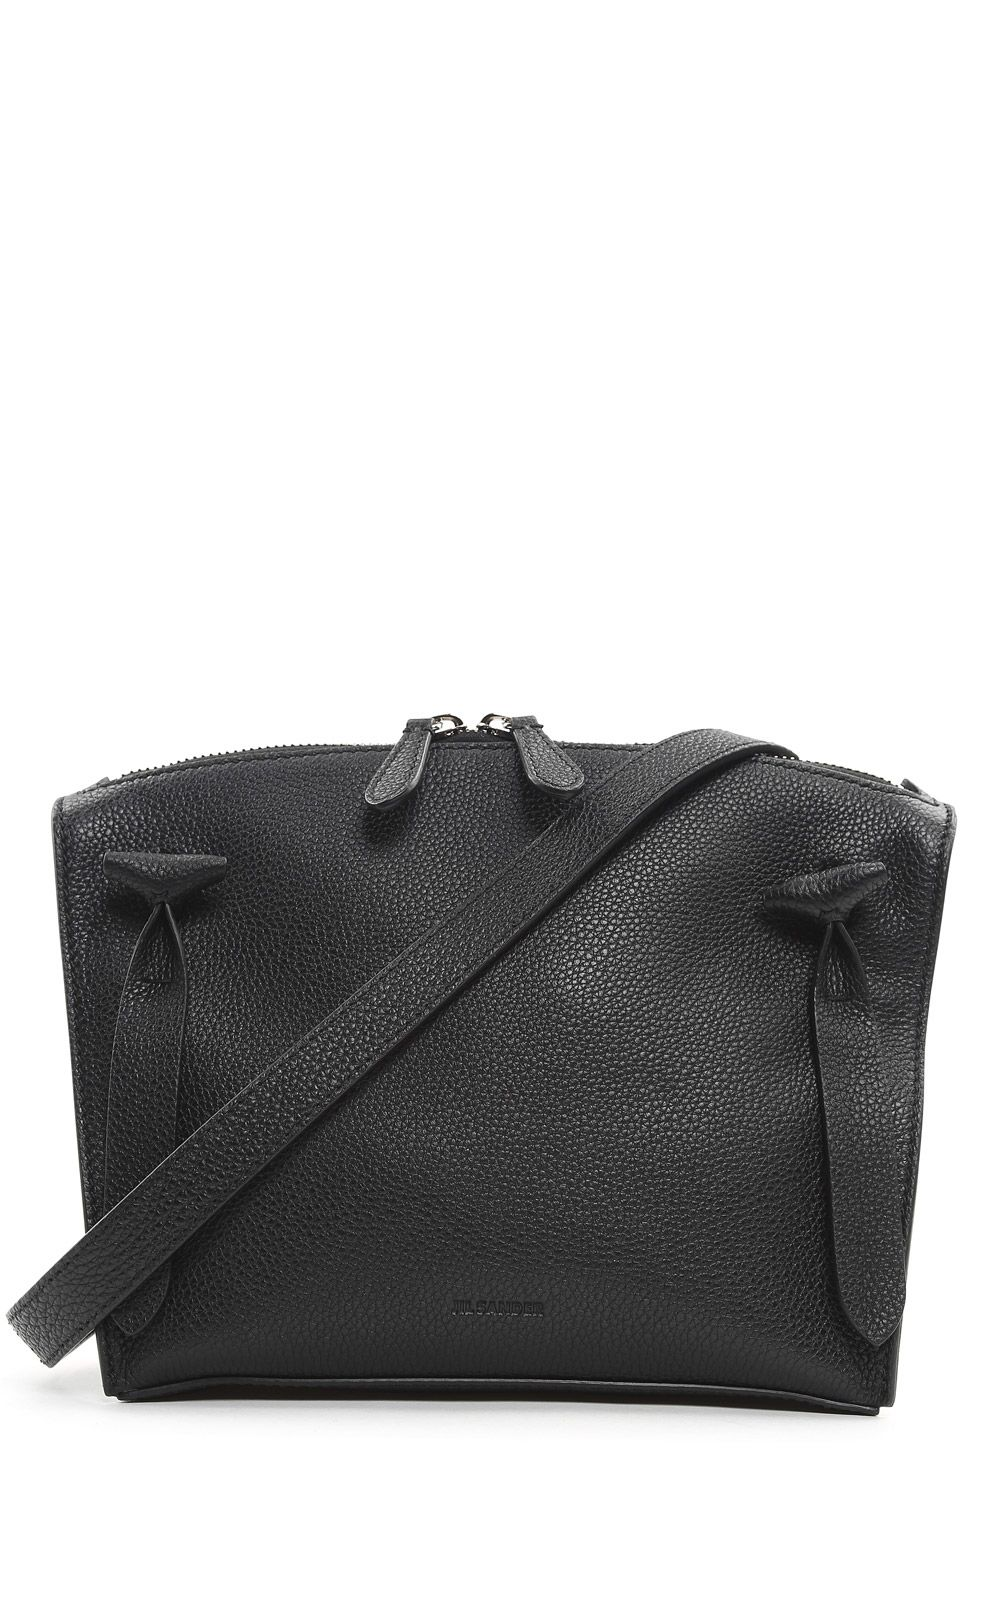 Jil Sander Hill Pebbled-leather Cross-body Bag